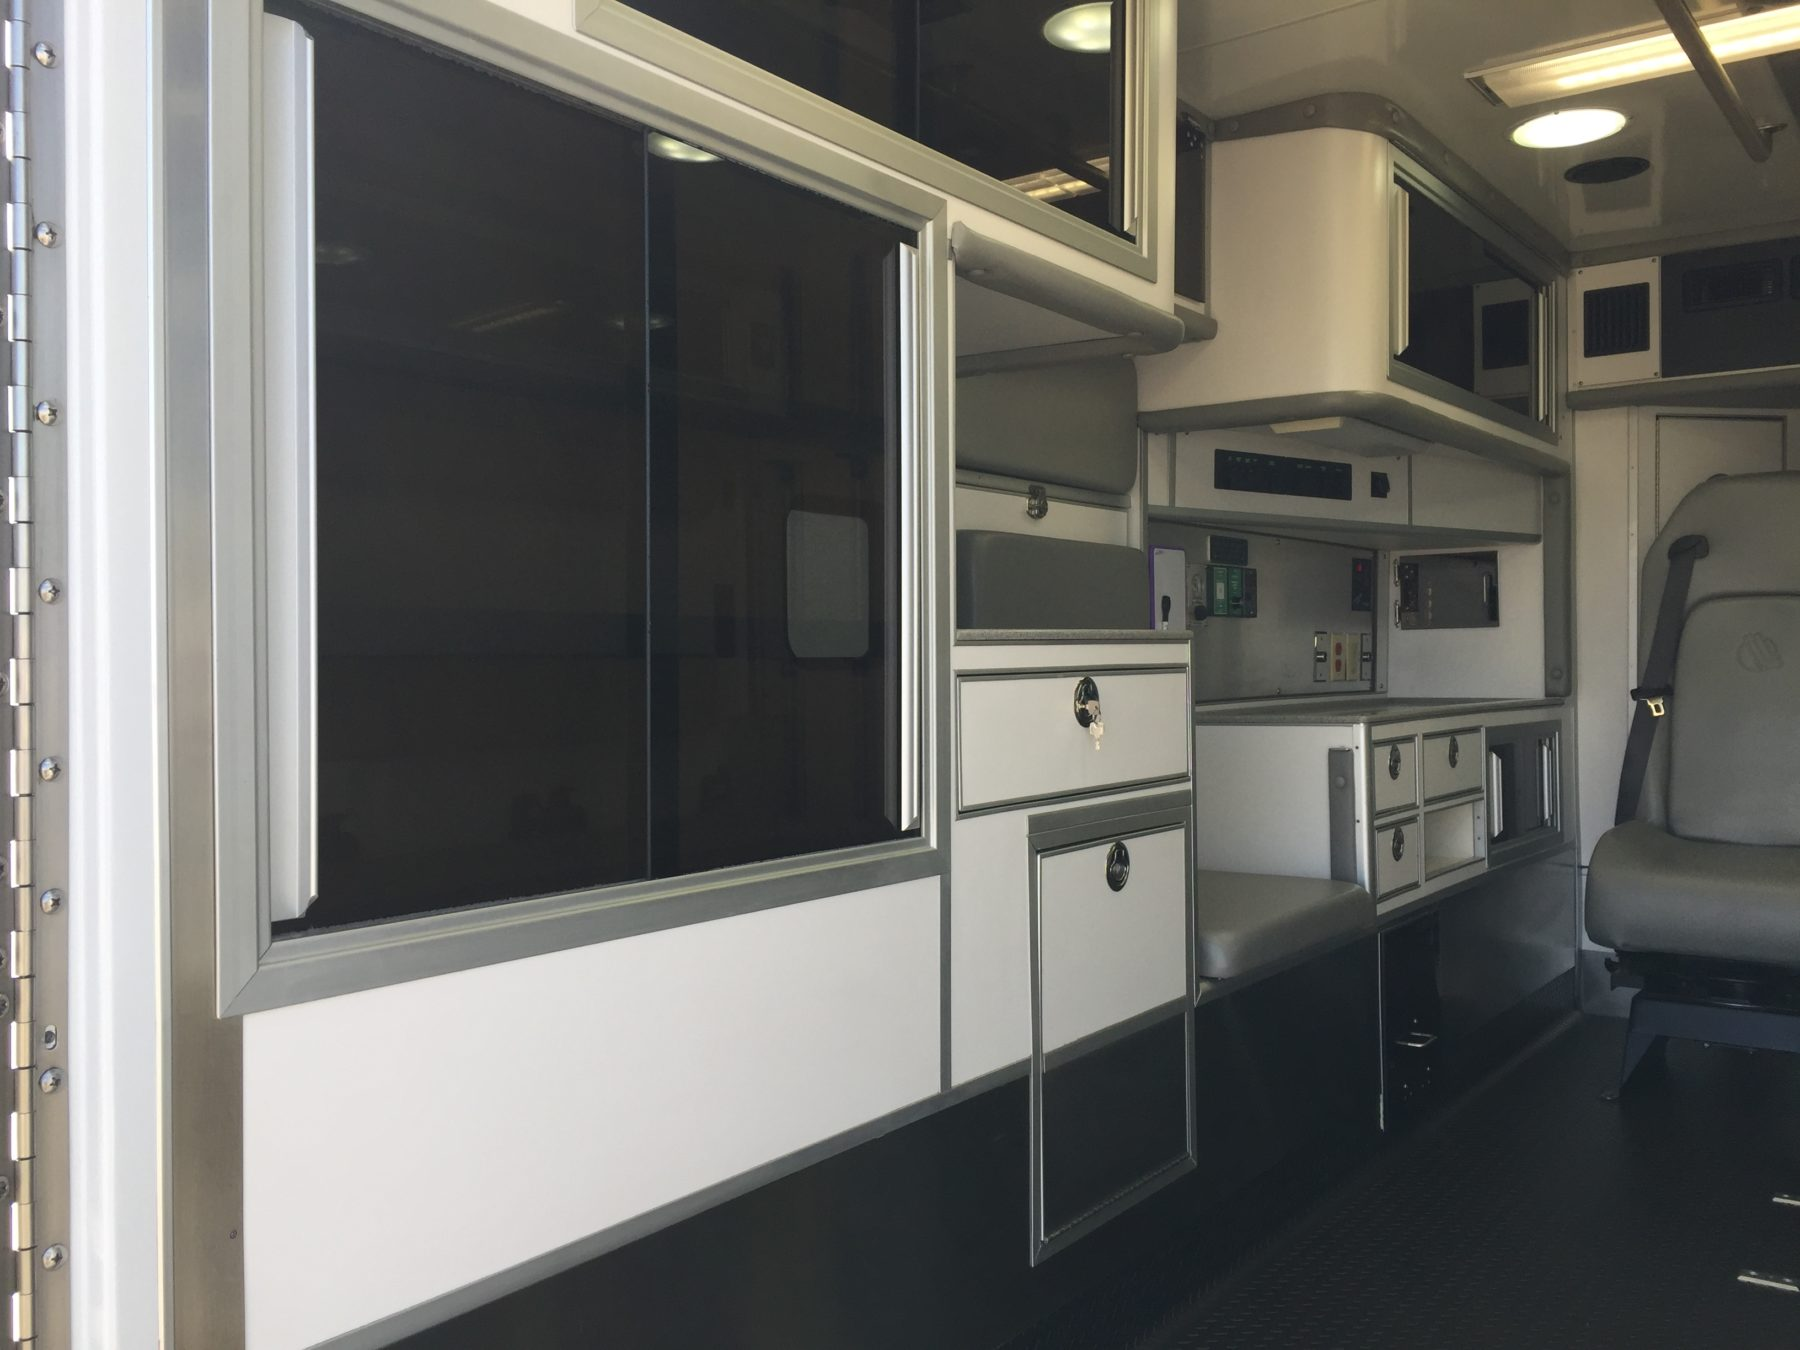 2017 Chevrolet K3500 4x4 Type 1 Ambulance For Sale – Picture 10